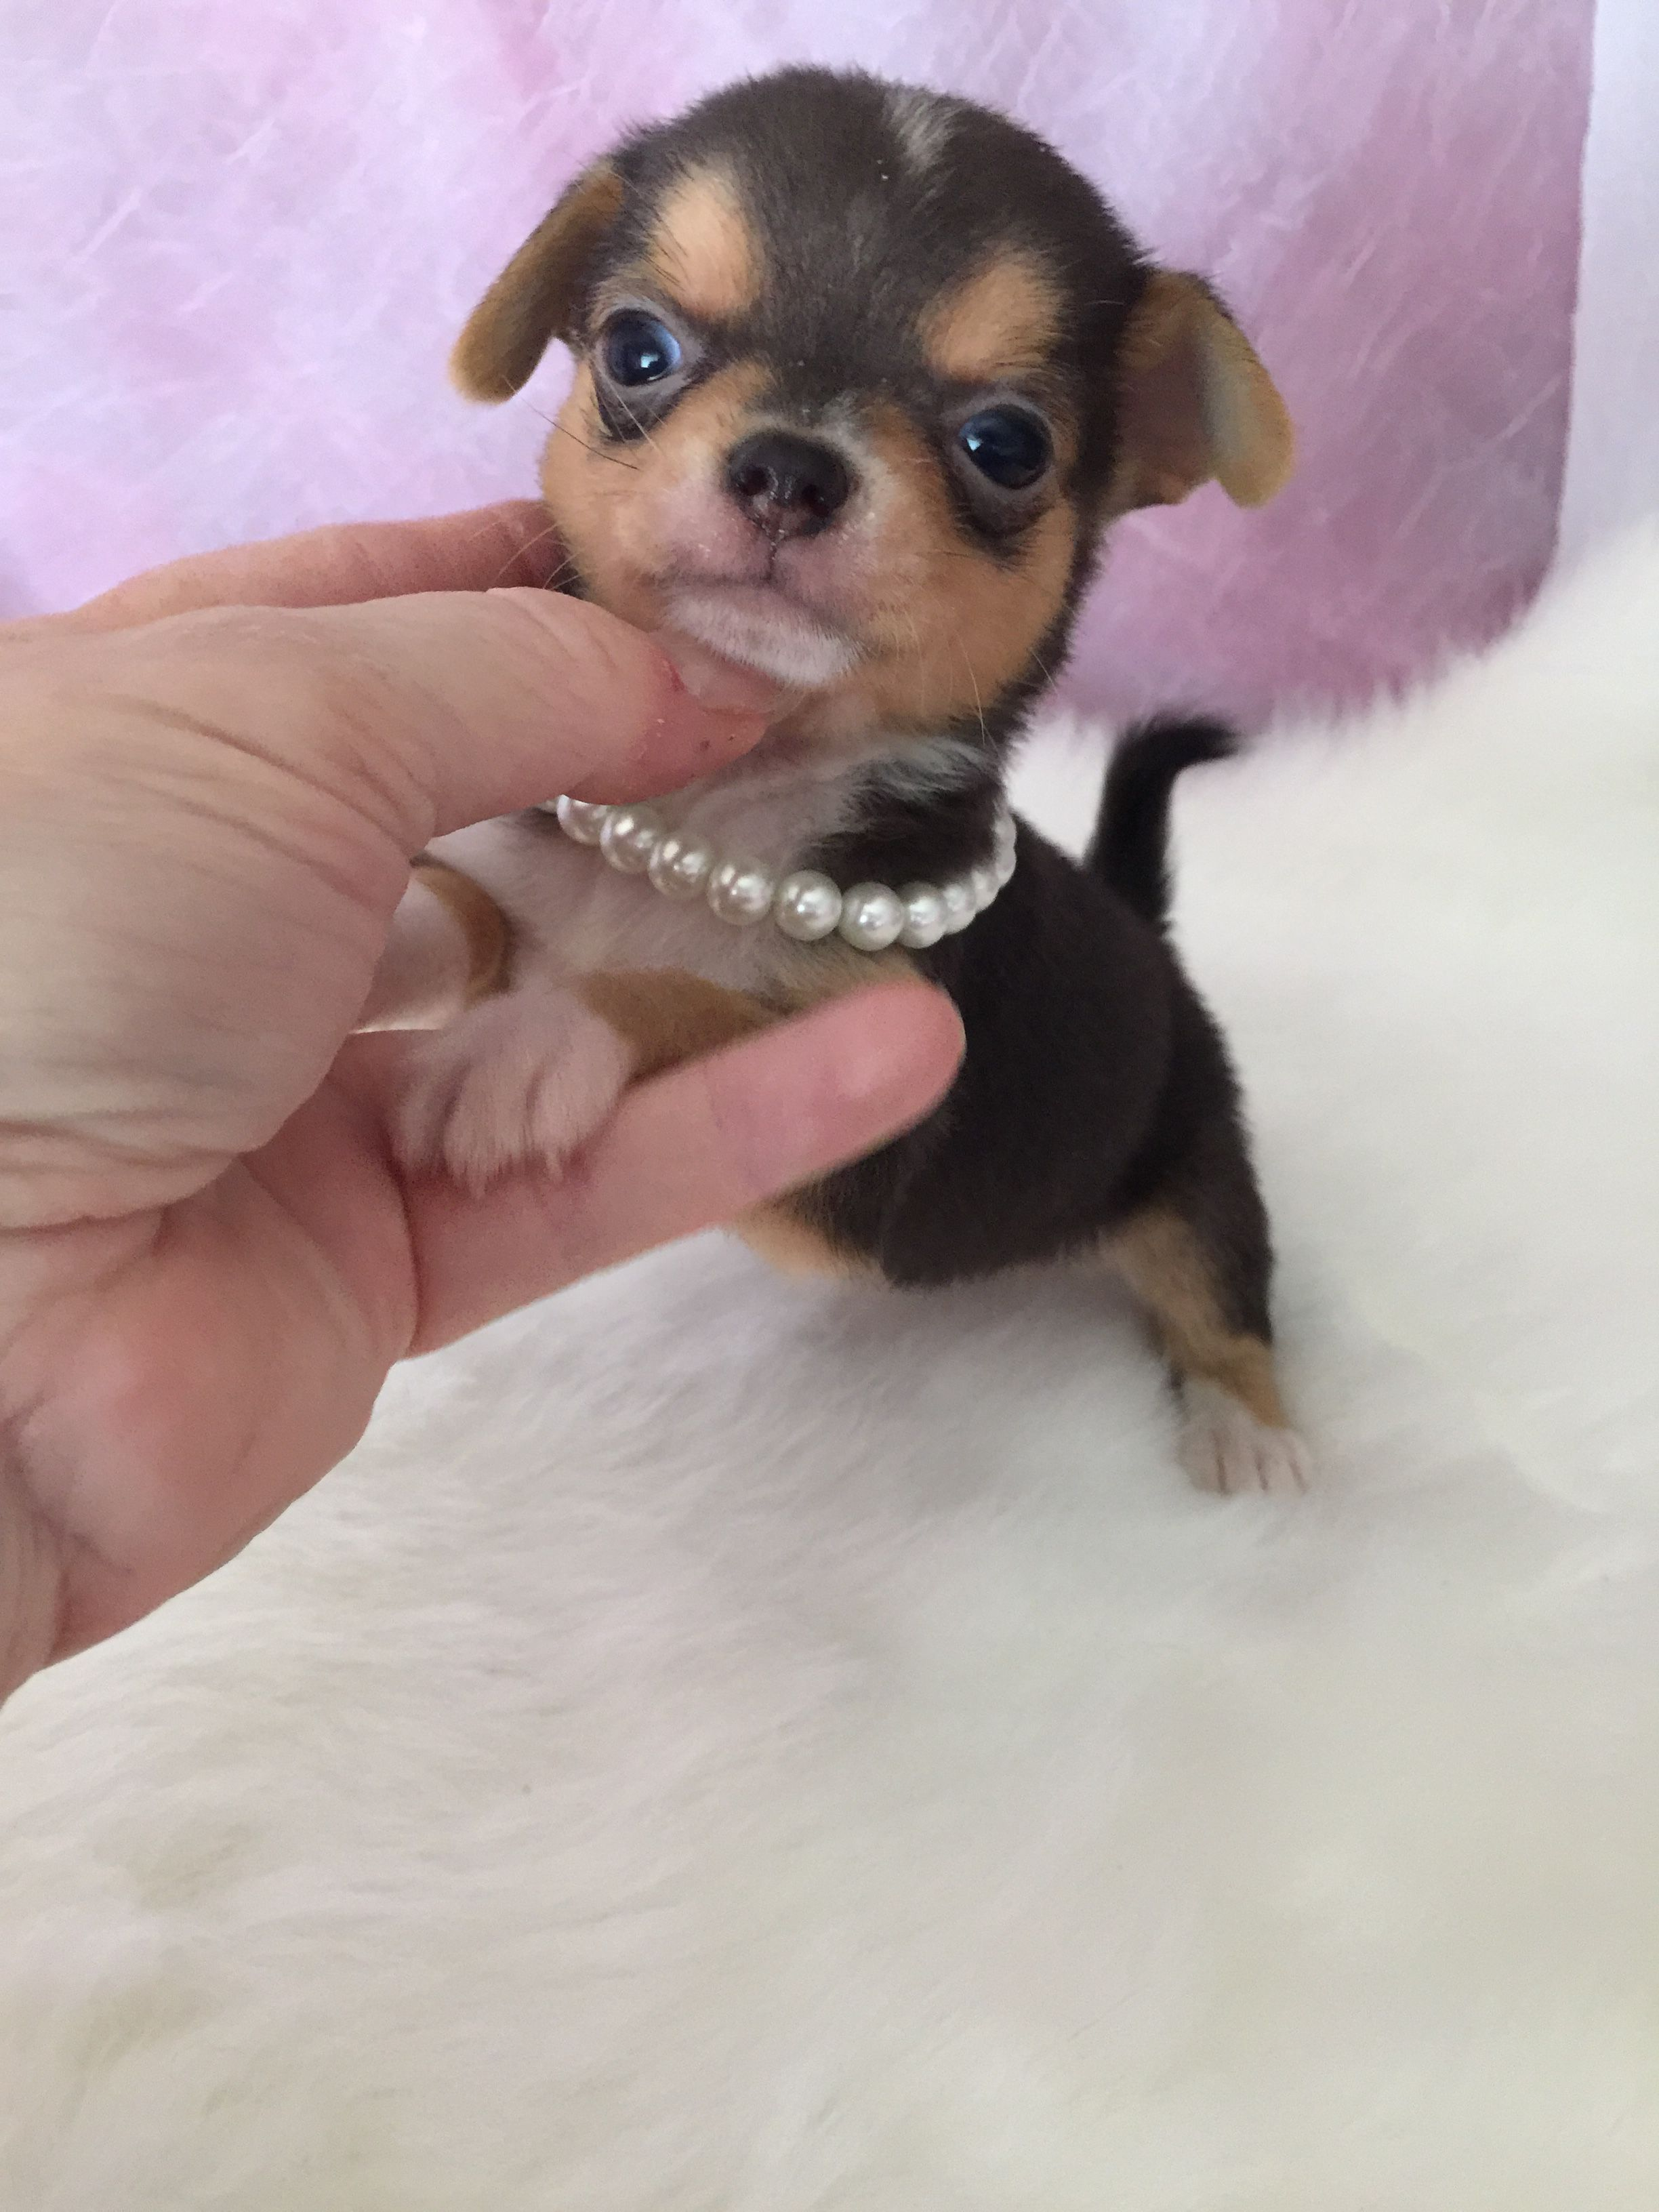 Teacup Chihuahua Puppies For Sale We Specialize In Teacup